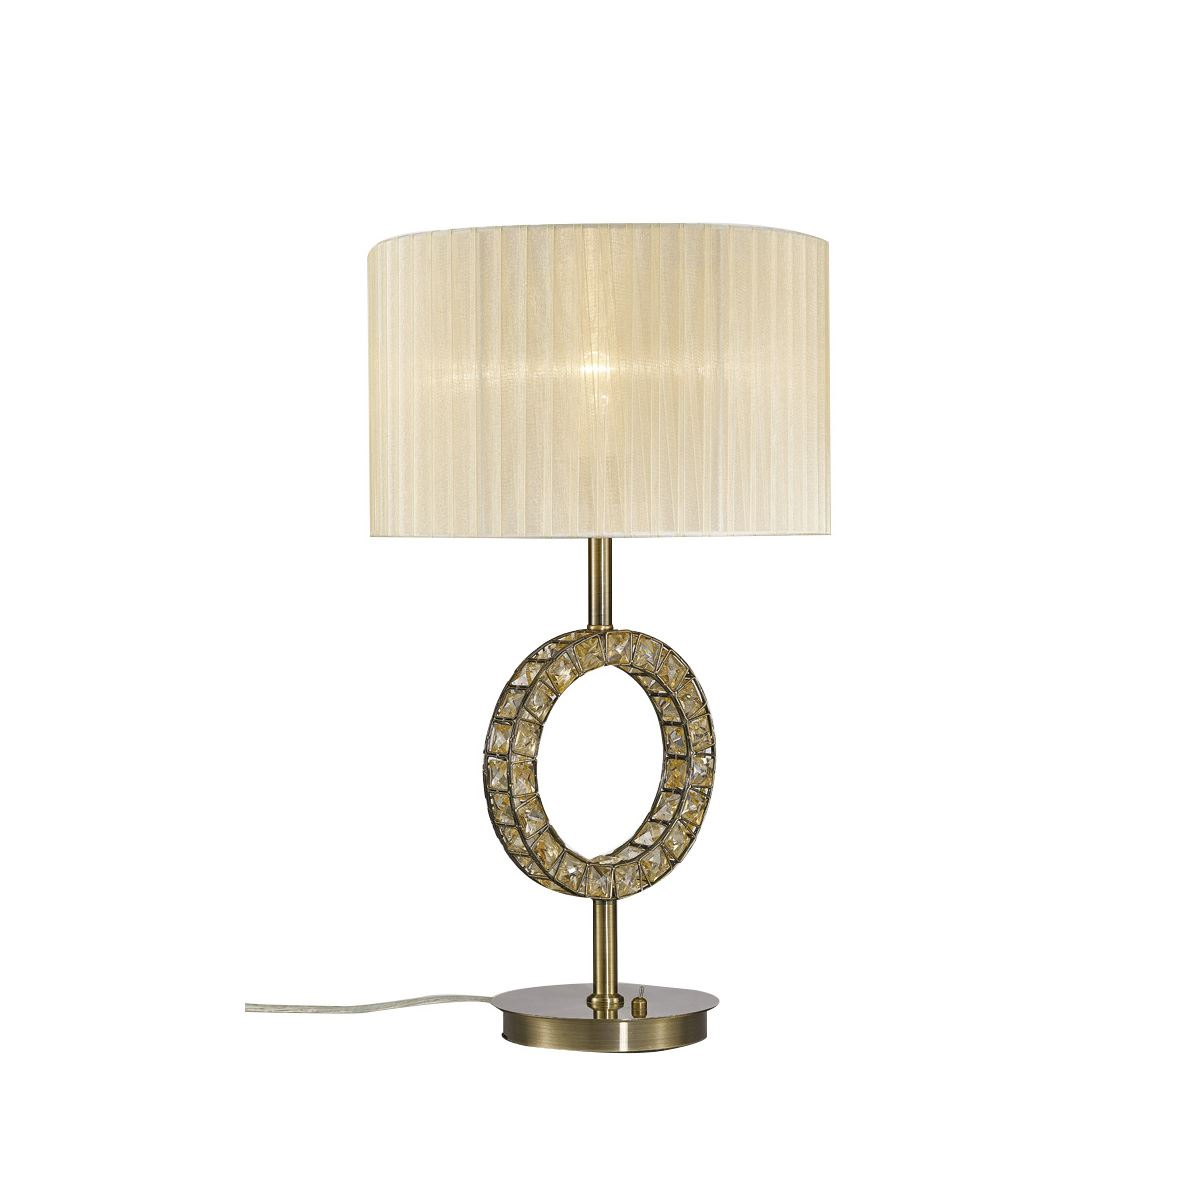 Diyas Florence Round Table Lamp With Cream Shade 1 Light Antique Brass/Crystal